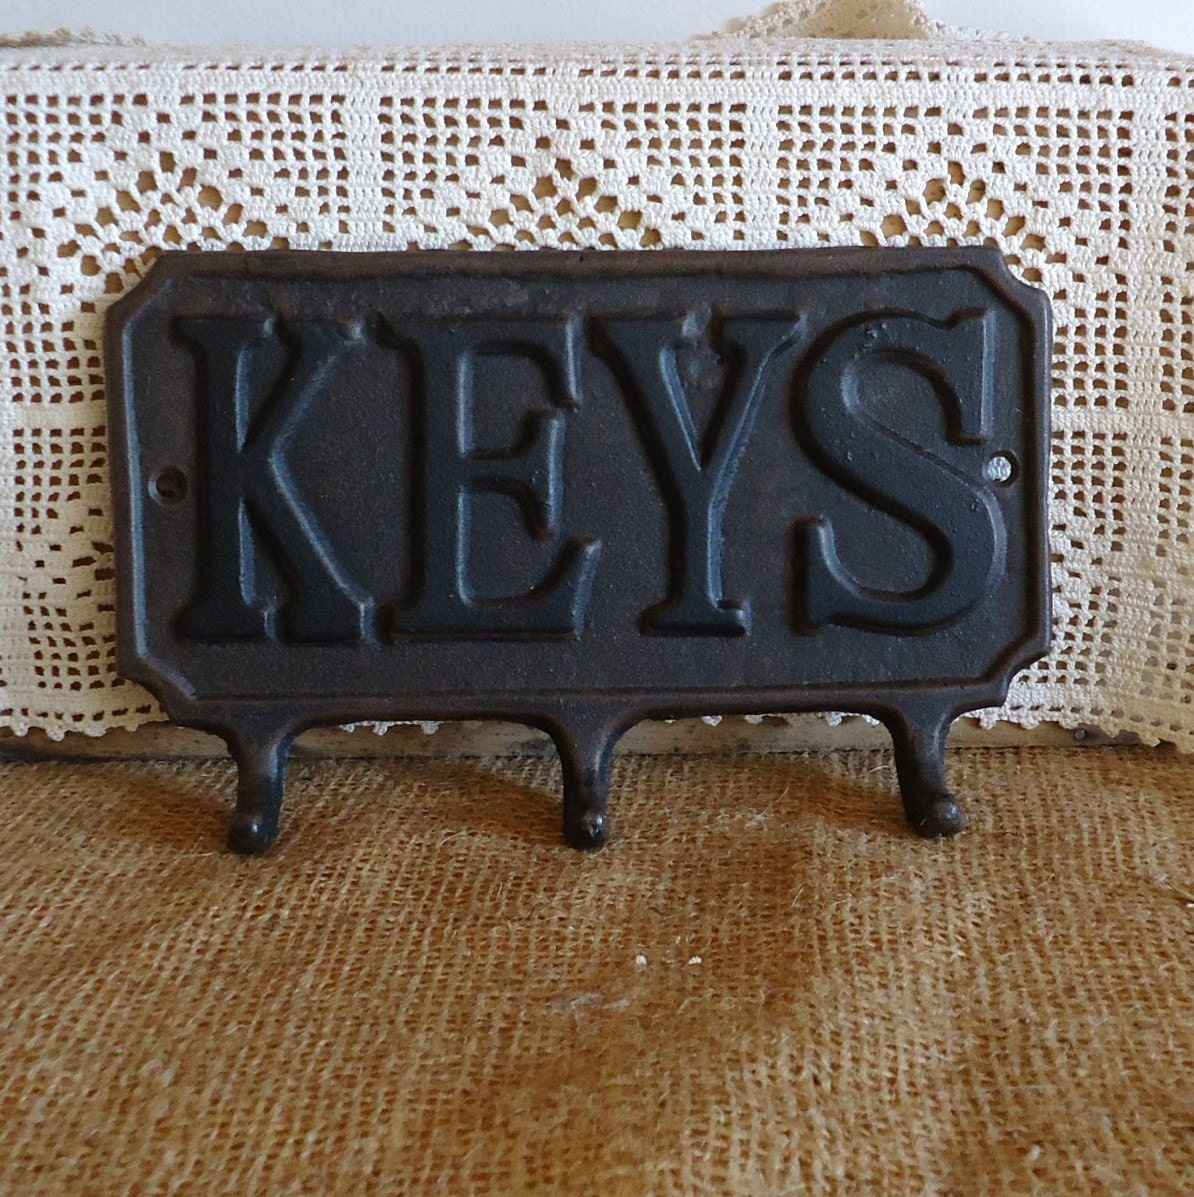 Wall Decor With Key Hooks : Key hook cast iron hardware wall decor home by raggedyree